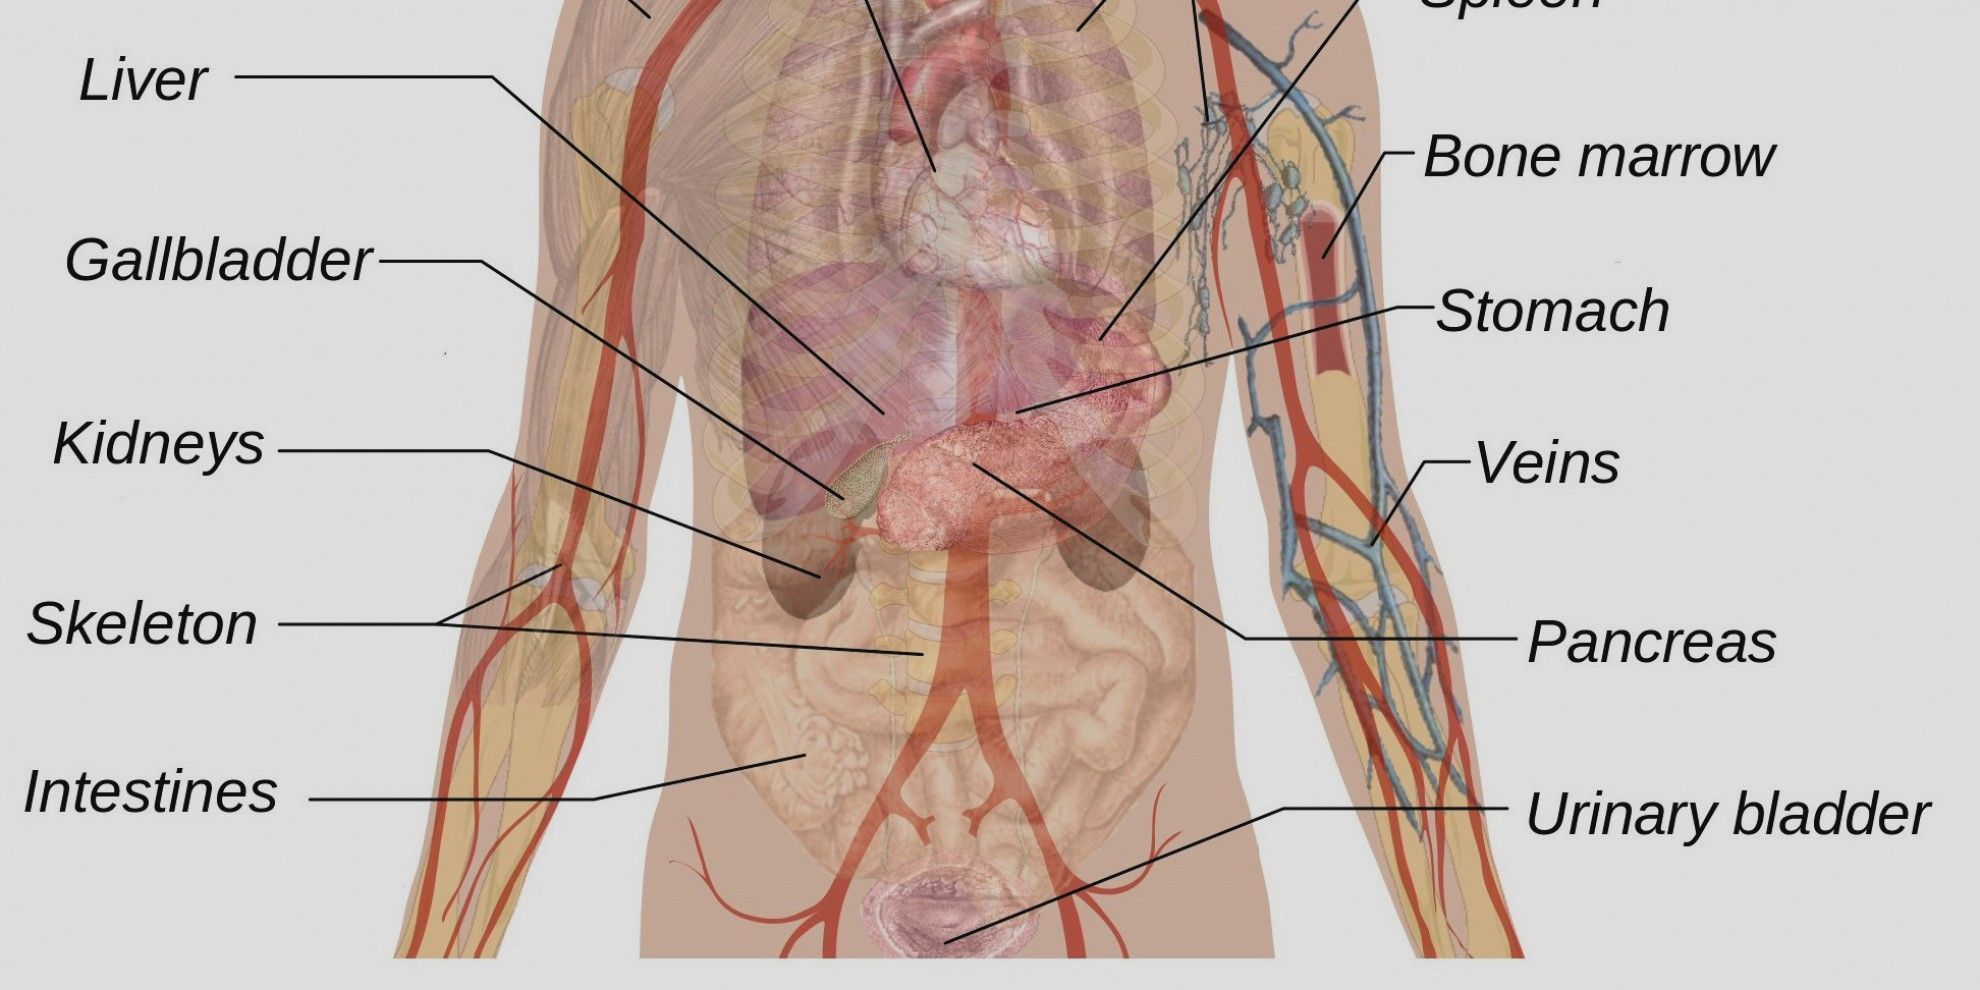 human body diagram appendix human body diagram appendix anatomy abdomen appendix 706872 anatomy library [ 1980 x 990 Pixel ]